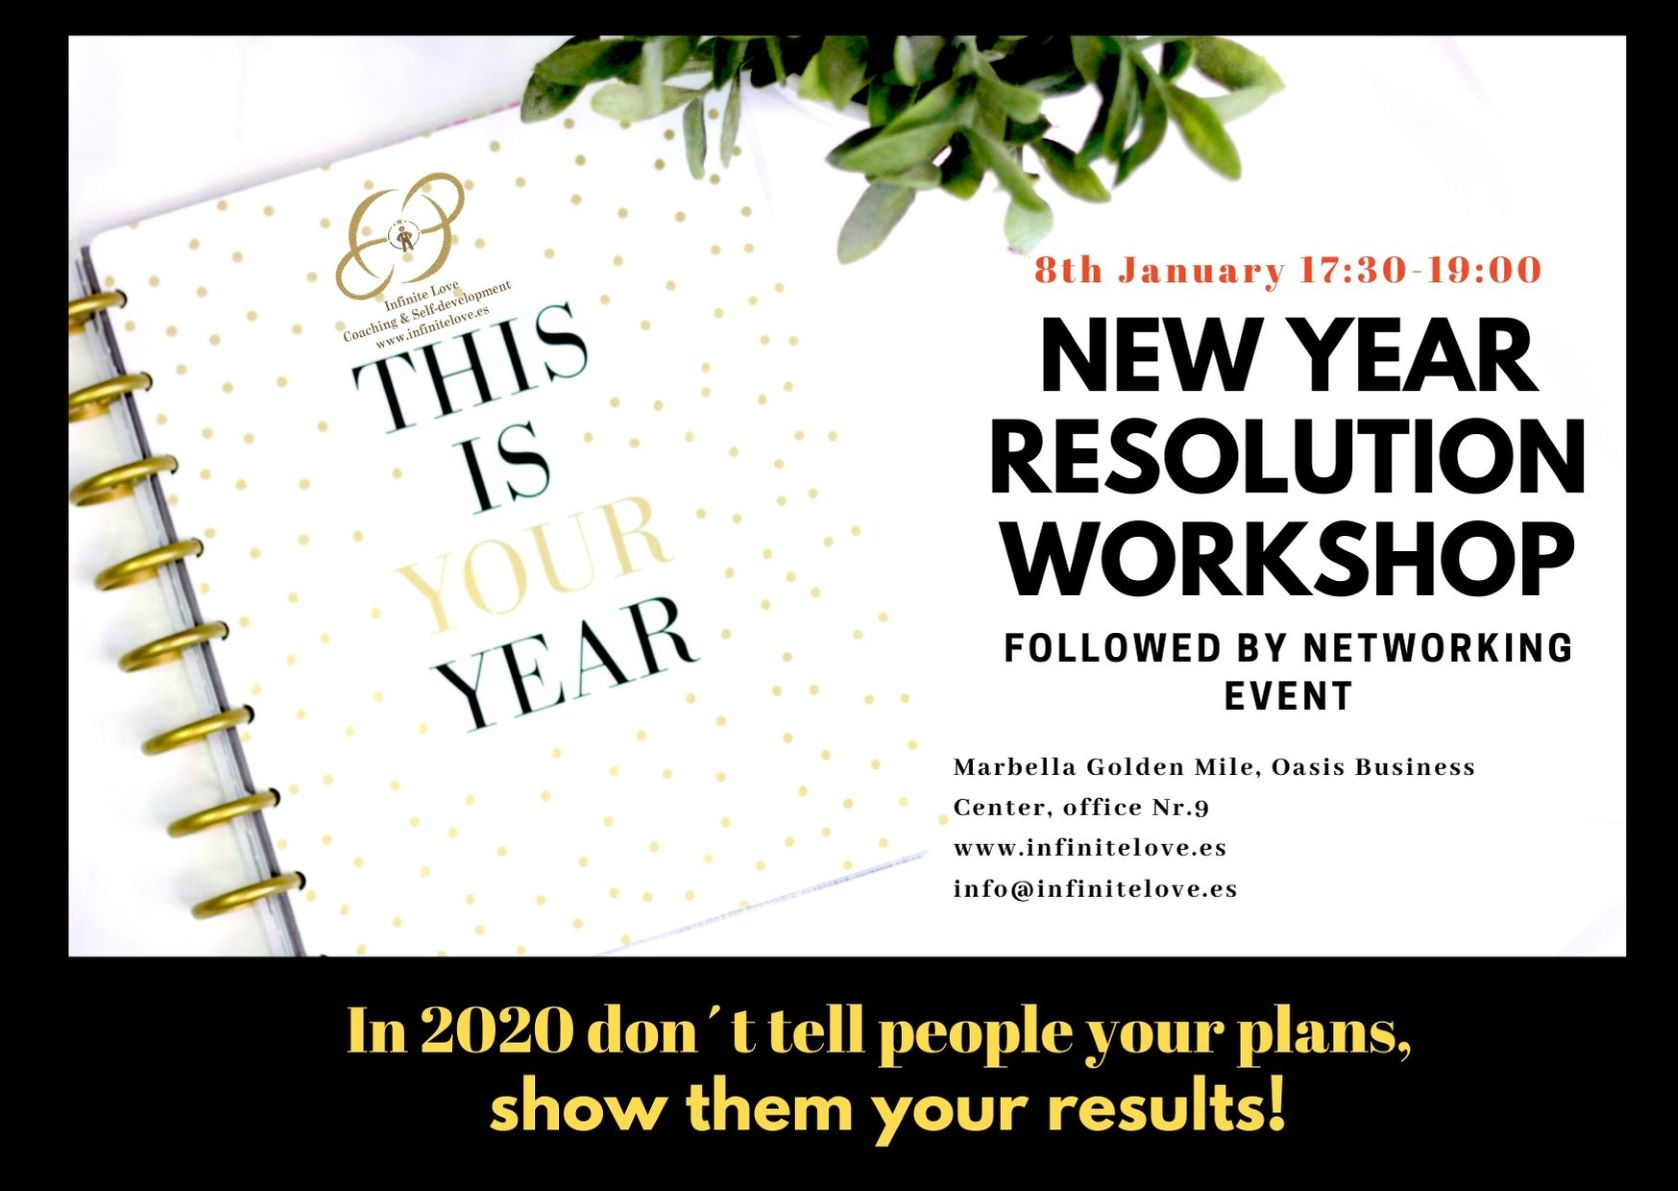 New year Resolution Workshop 2020 by Infinite Love Academy Marbella Spain